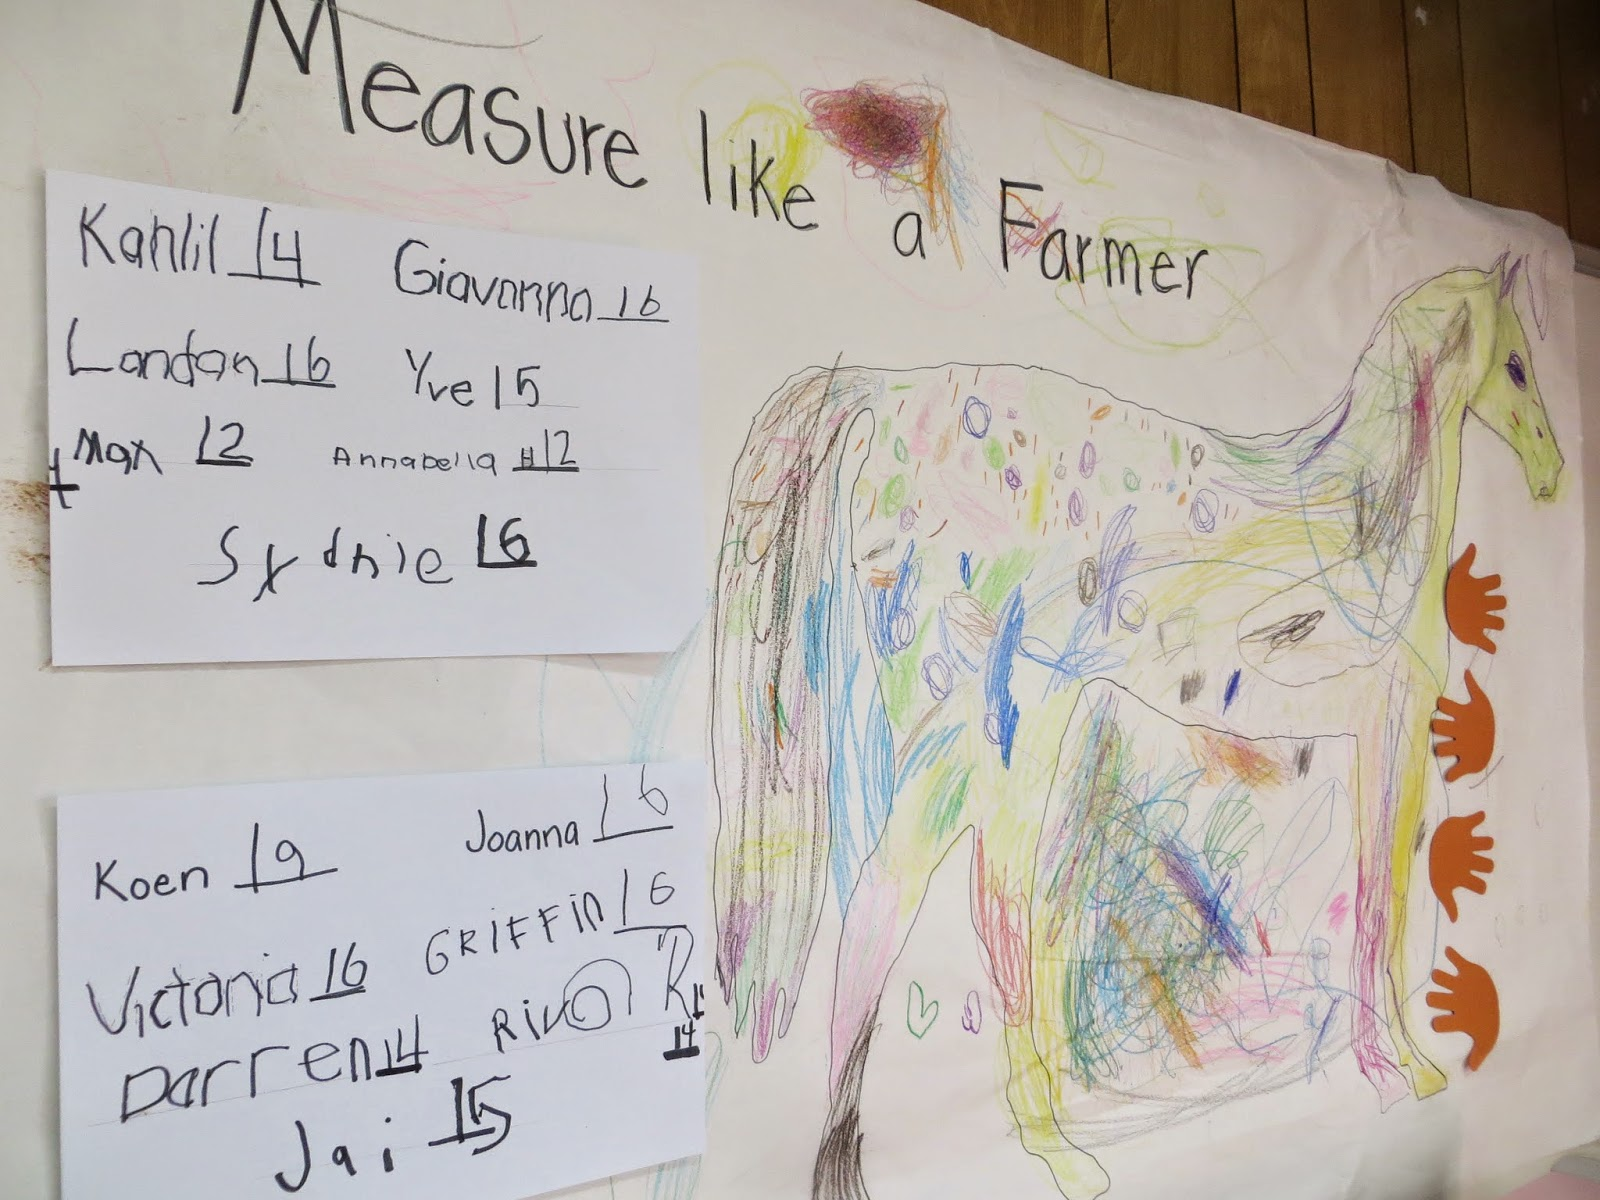 Measuring like a farmer preschool math activity- farmer unit